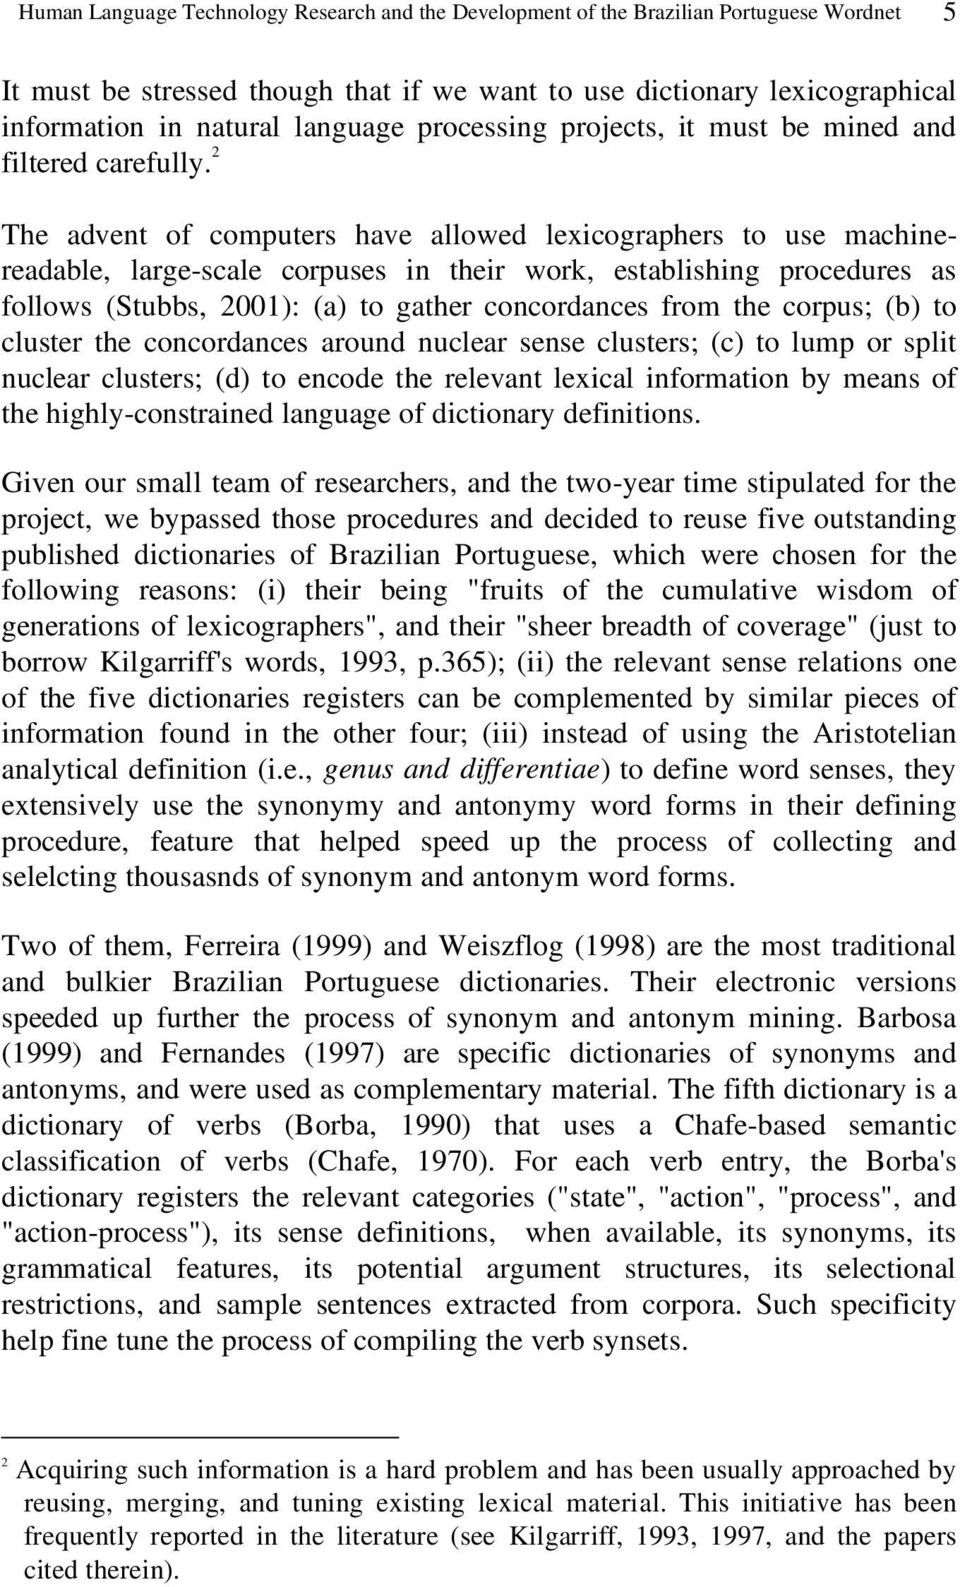 2 The advent of computers have allowed lexicographers to use machinereadable, large-scale corpuses in their work, establishing procedures as follows (Stubbs, 2001): (a) to gather concordances from